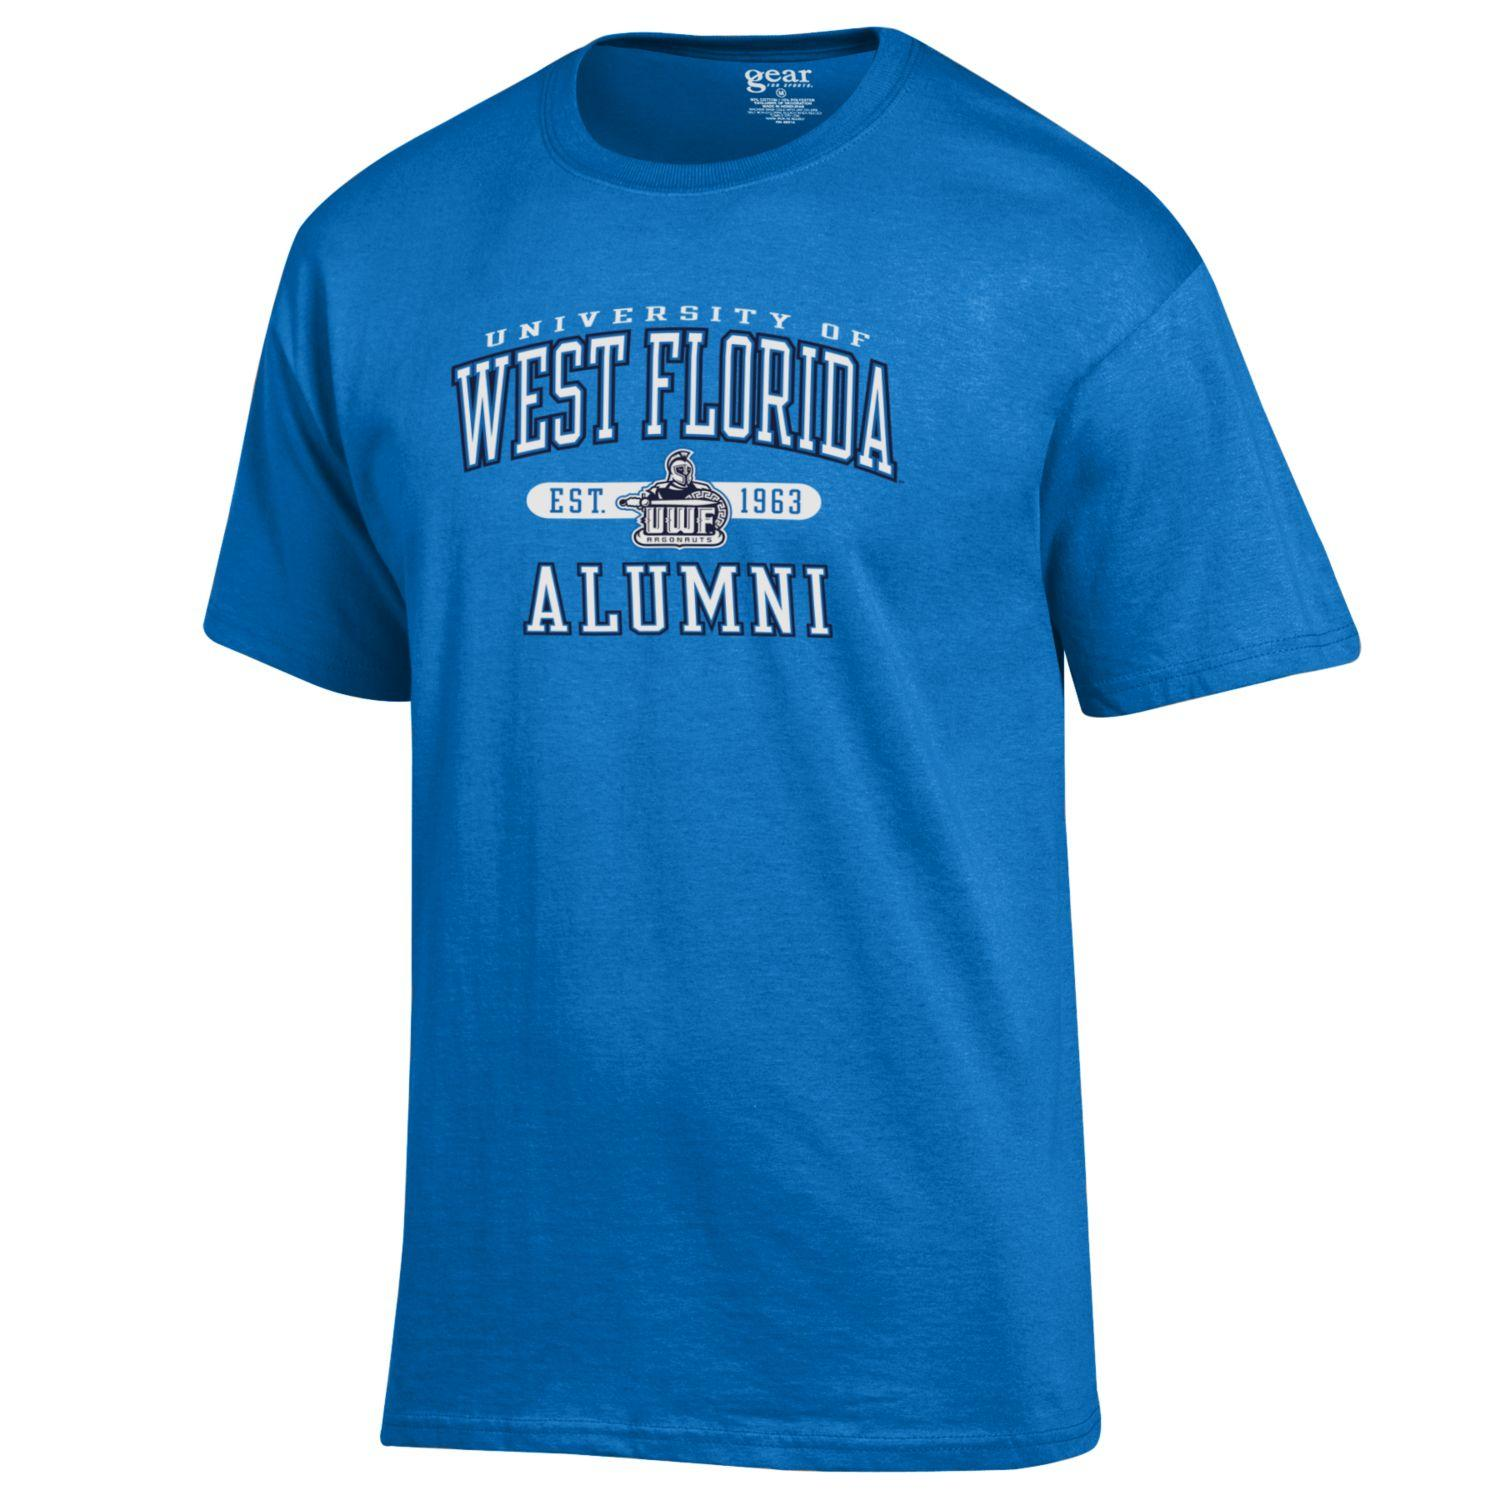 Alumni University of West Florida